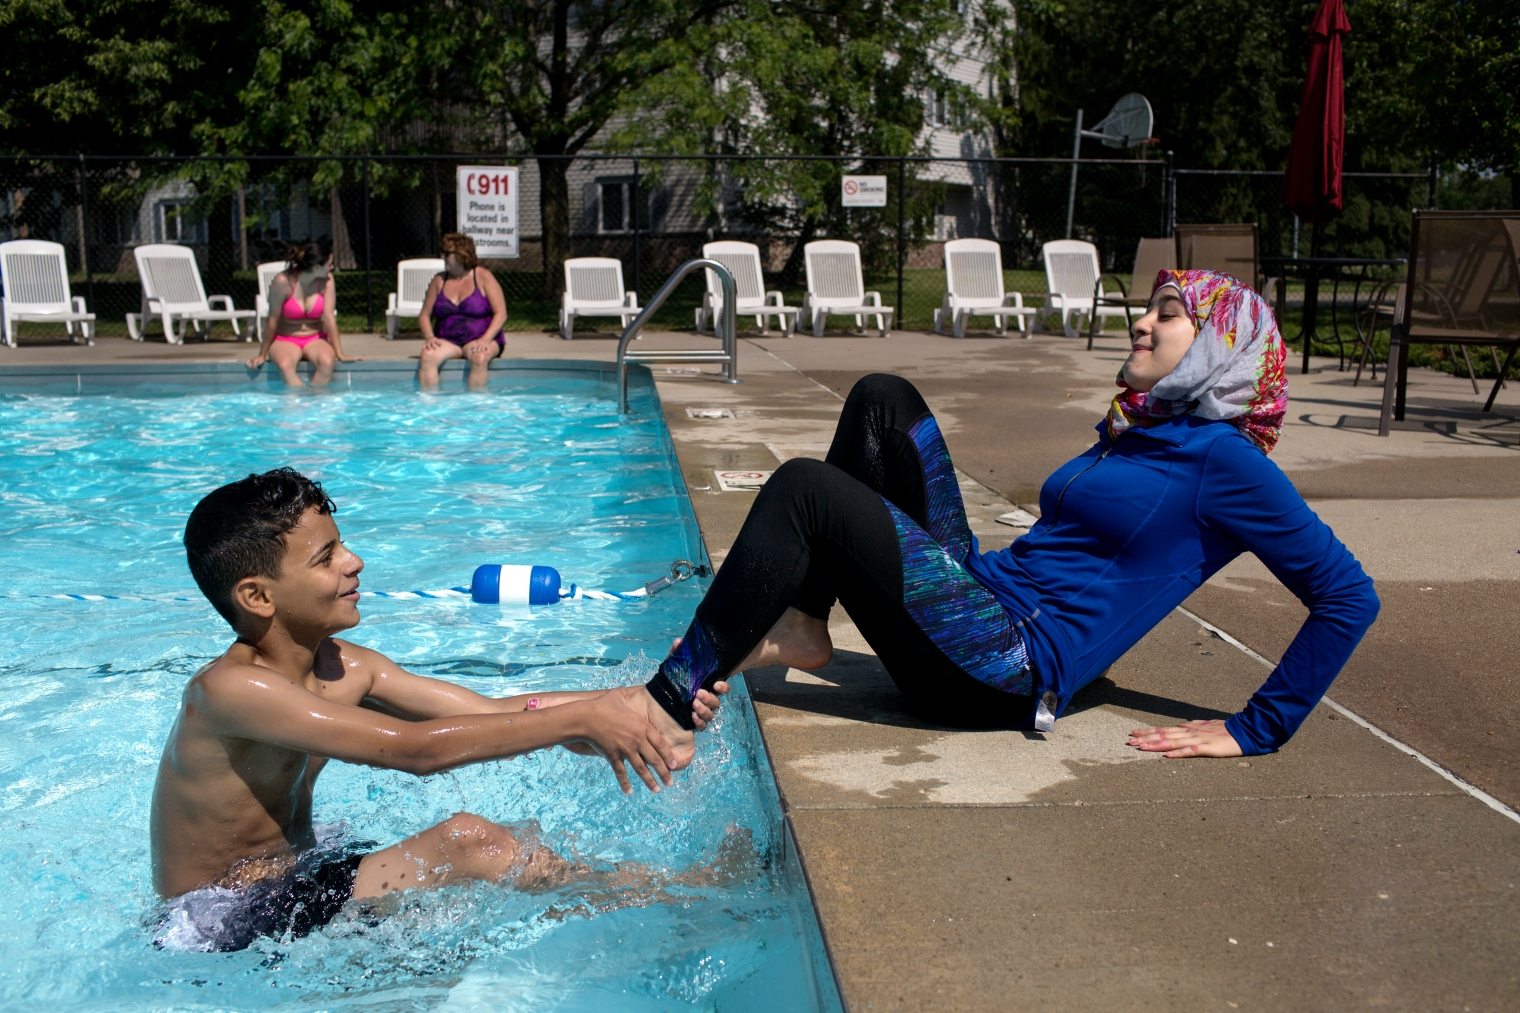 Sedra Tameem pulls away from Taha Albomo Hammed as he tries to pull Sedra into the pool at the Tameem's apartment complex in West Des Moines, Iowa.